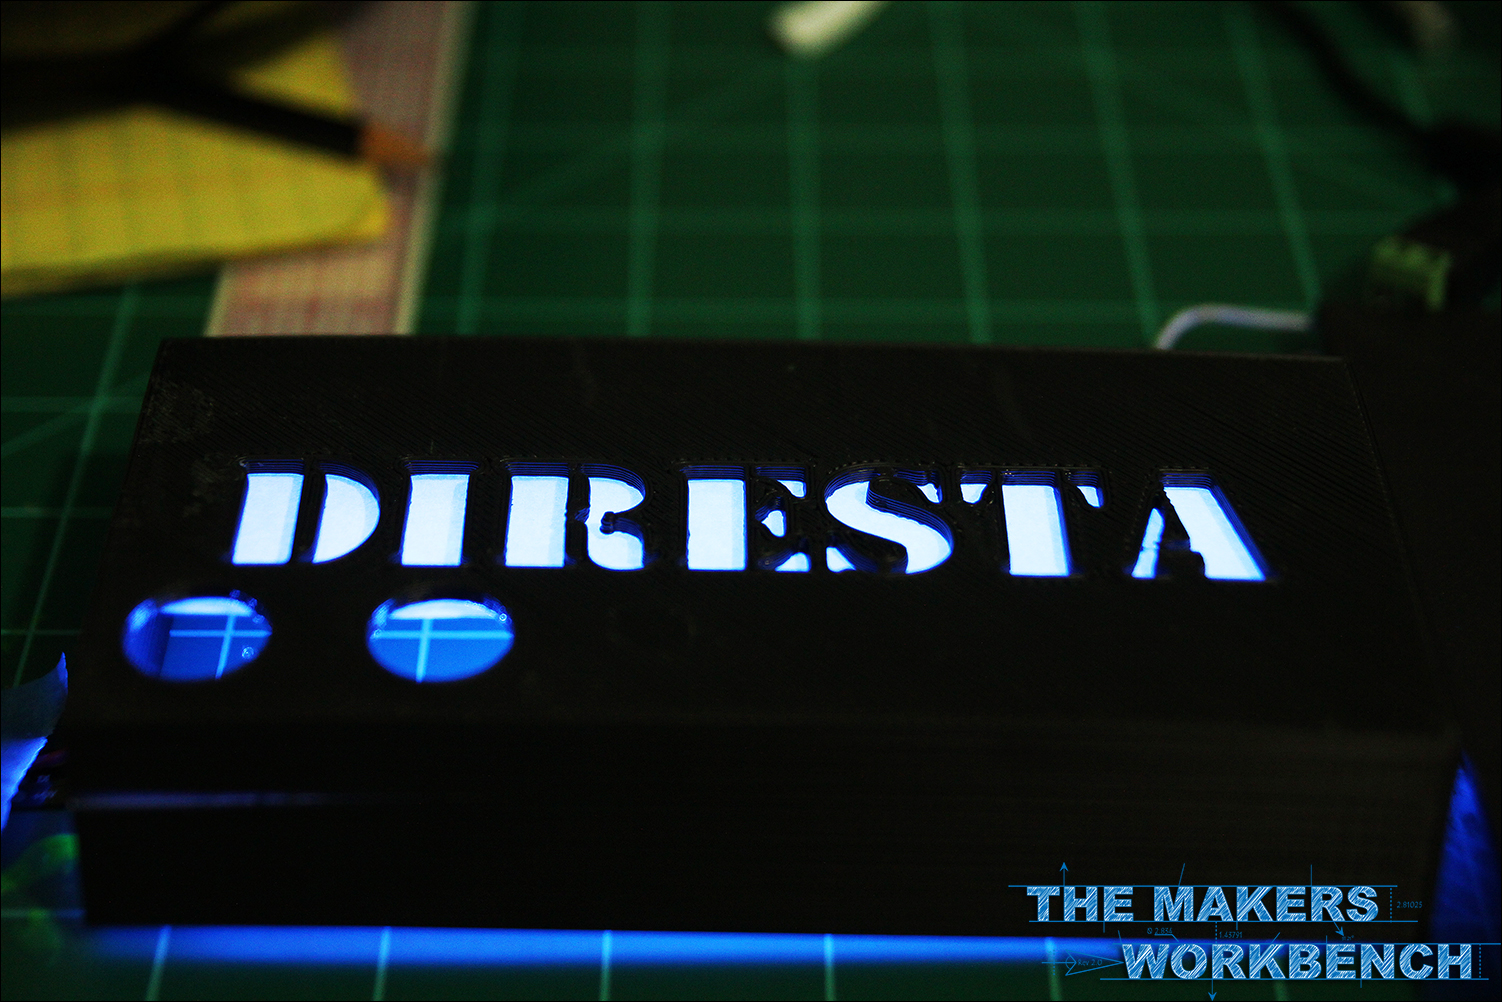 HC-SR04 + Arduino + NeoPixels = an awesome Distance Triggered Illuminated DIRESTA Sign